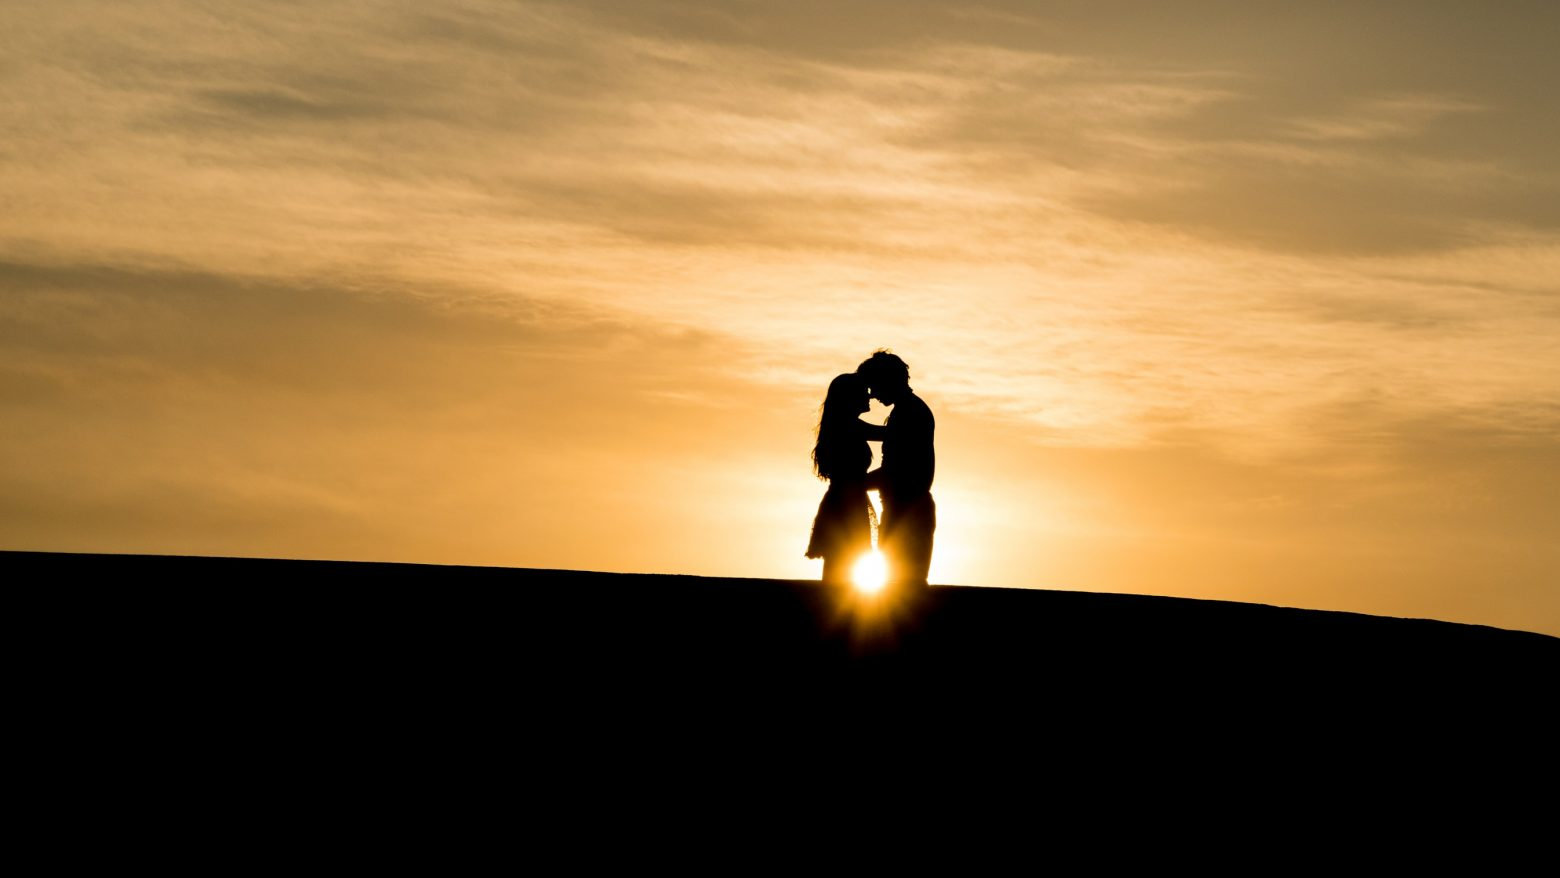 A man and woman couple stand silhouetted in front of a sunset at golden hour.